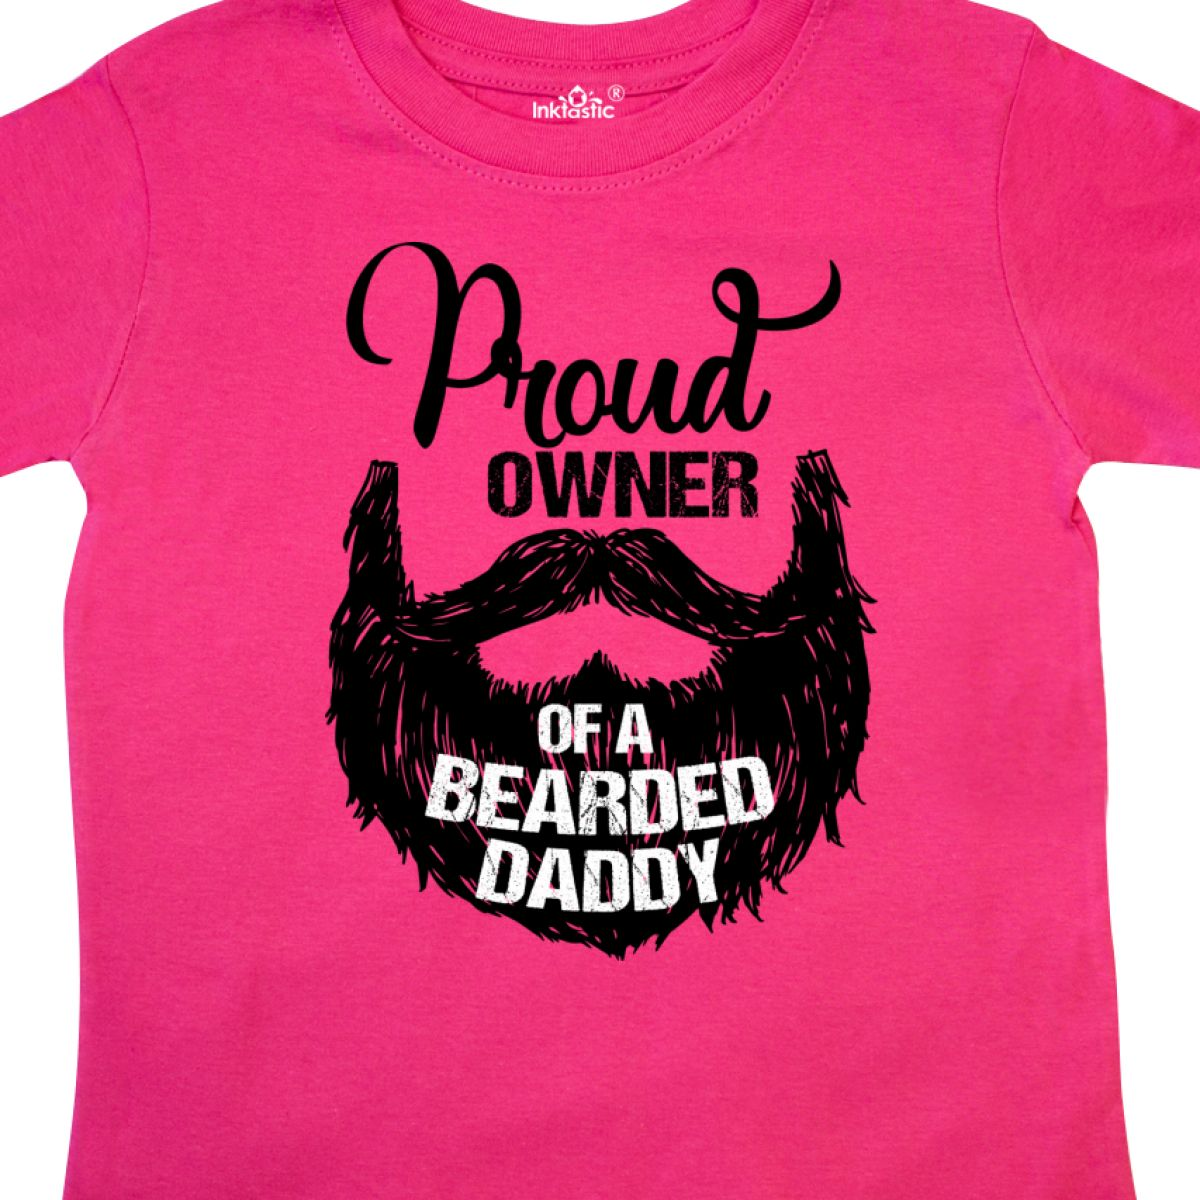 Inktastic-Proud-Owner-Of-A-Bearded-Daddy-Toddler-T-Shirt-Men-Beards-Tattoos-Baby thumbnail 6